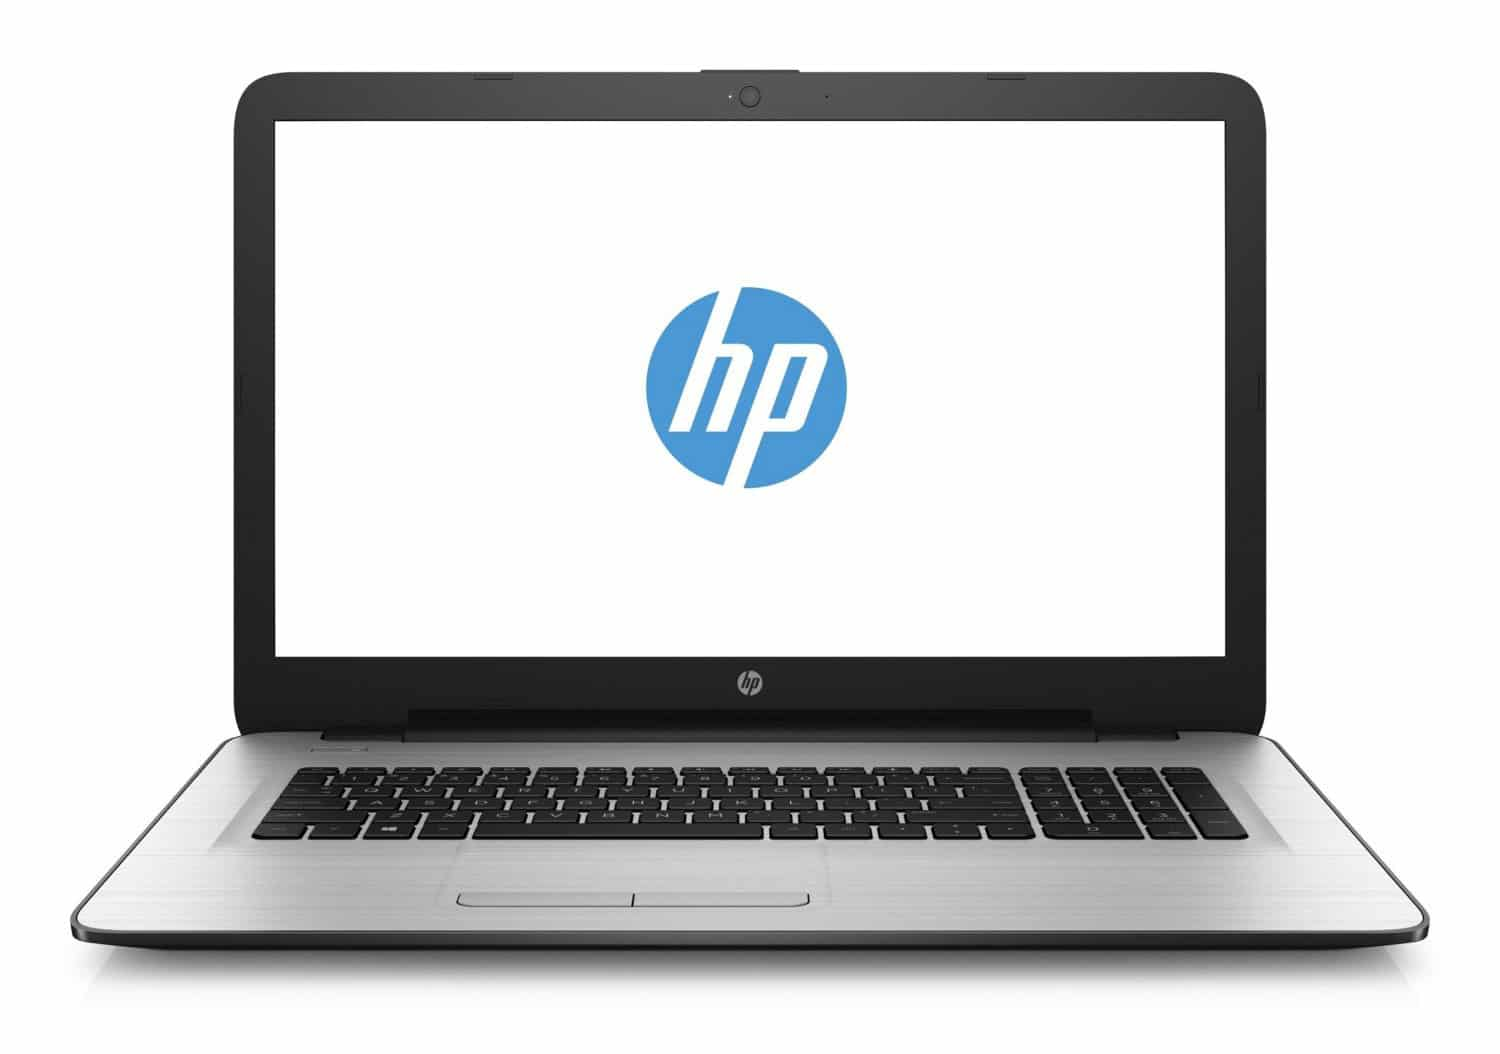 Vente Pc Portable Hp 17 X031nf Vente Flash 499 Euros Pc Portable 17 Pouces